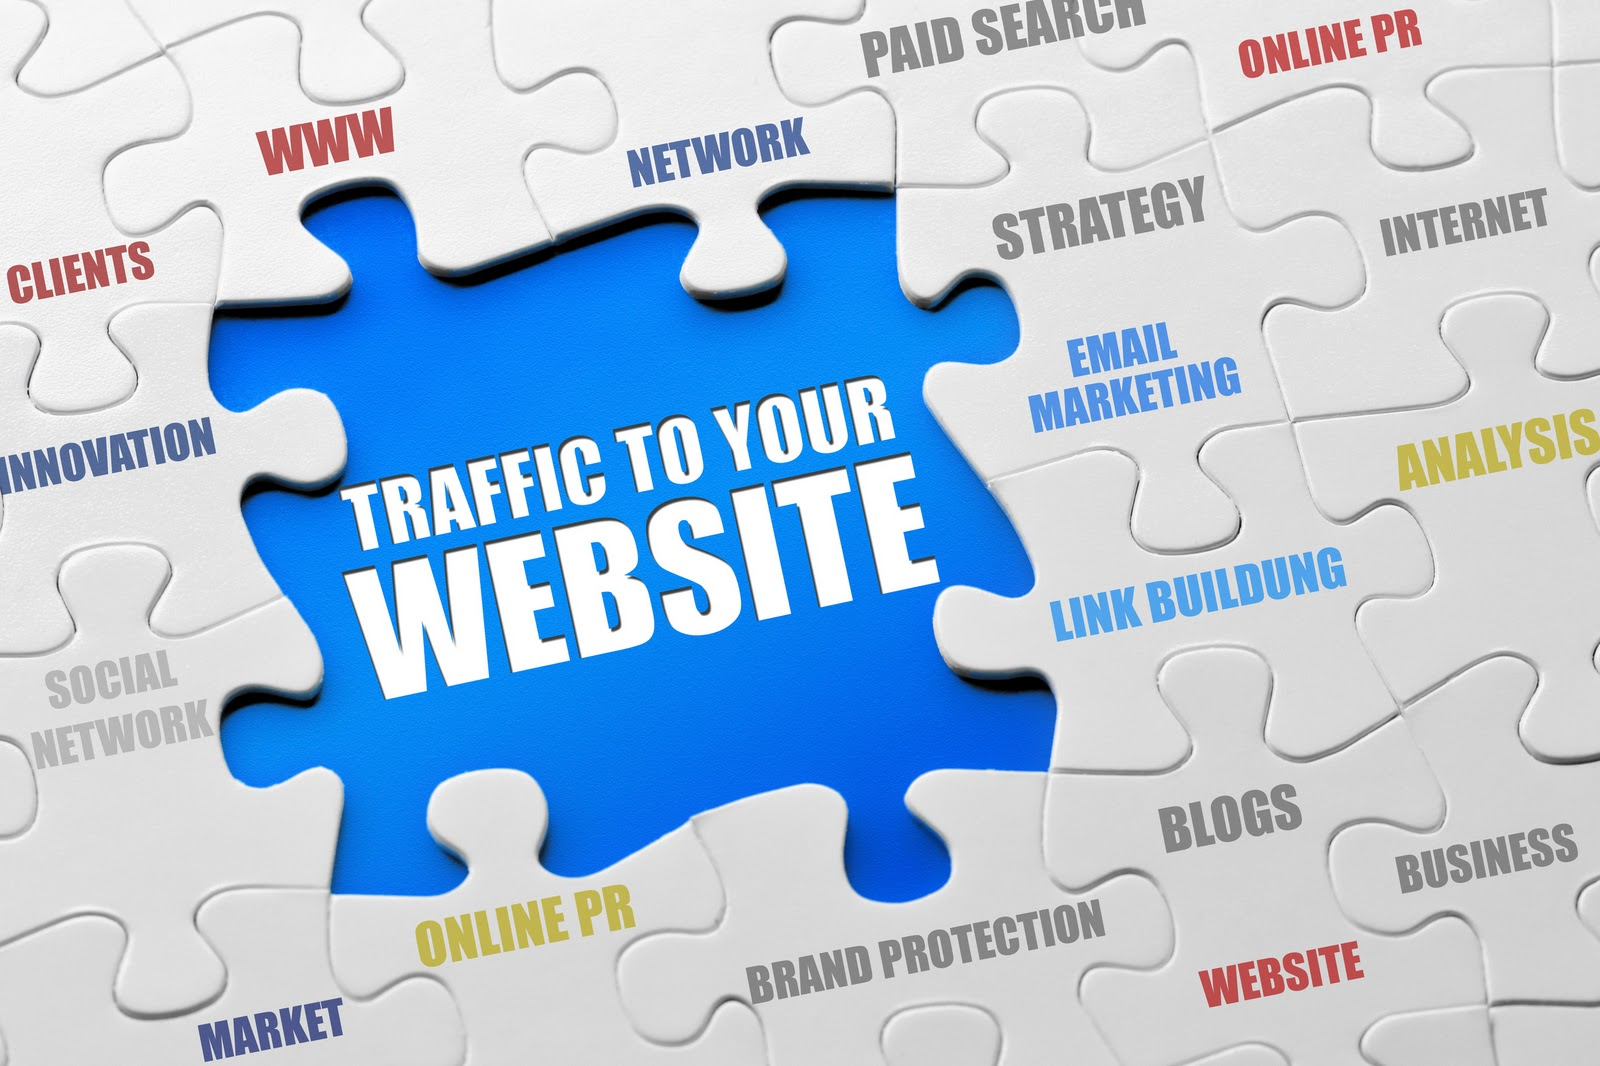 I will provide Unlimited Traffic to your Website PROOFED